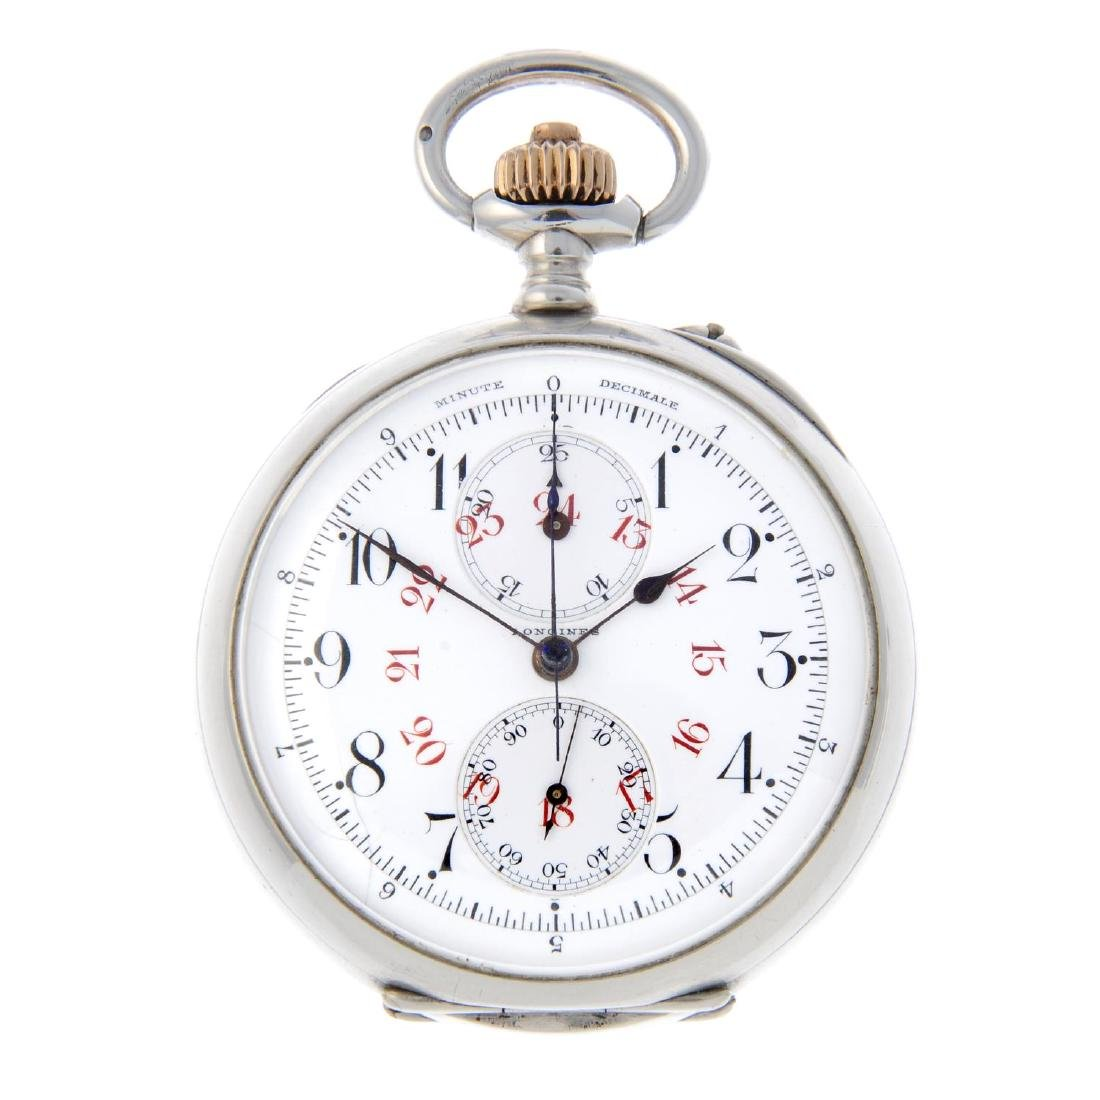 A dual dial chronograph pocket watch by Longines. White